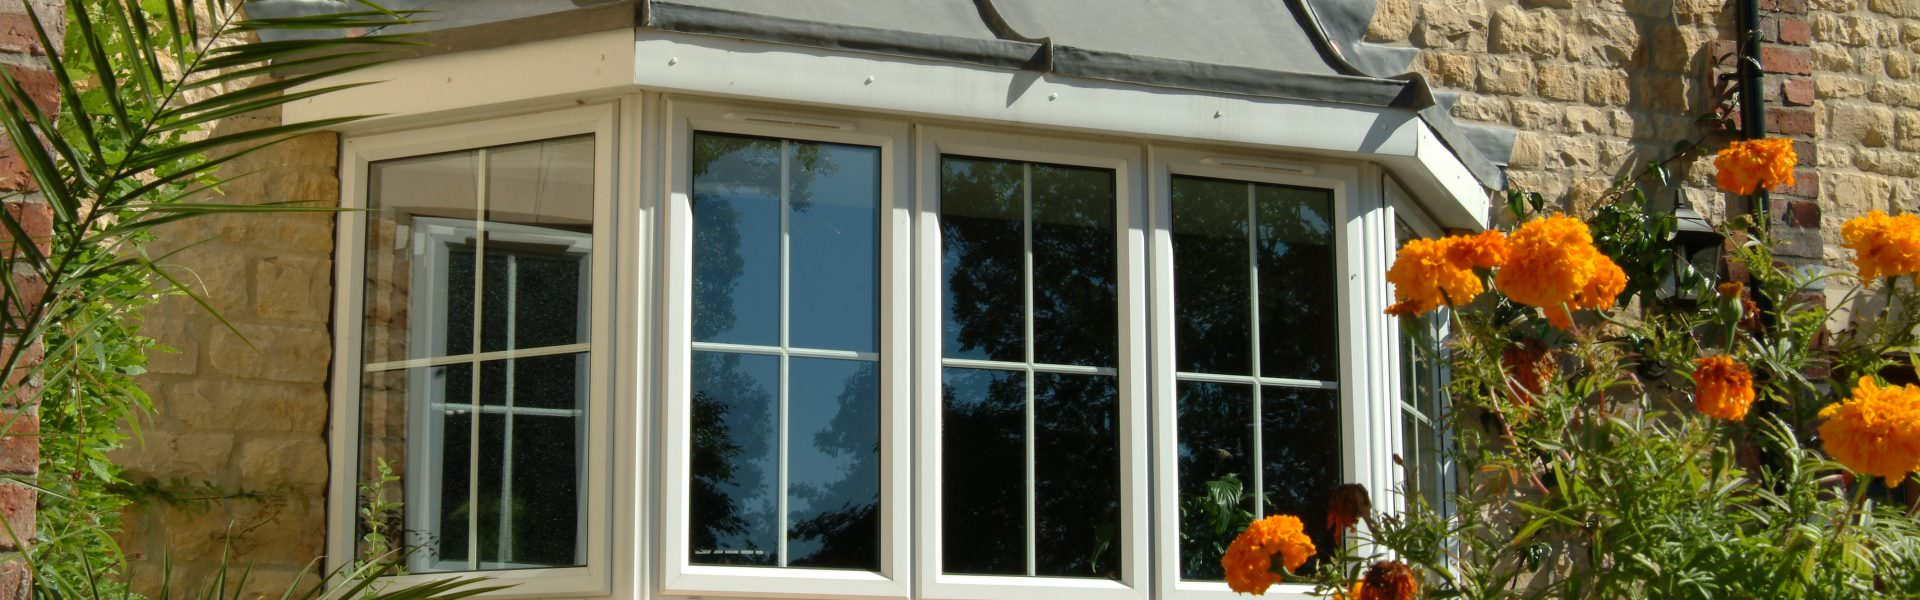 uPVC Bow and Bay Windows Coventry, Double Glazing Prices Online